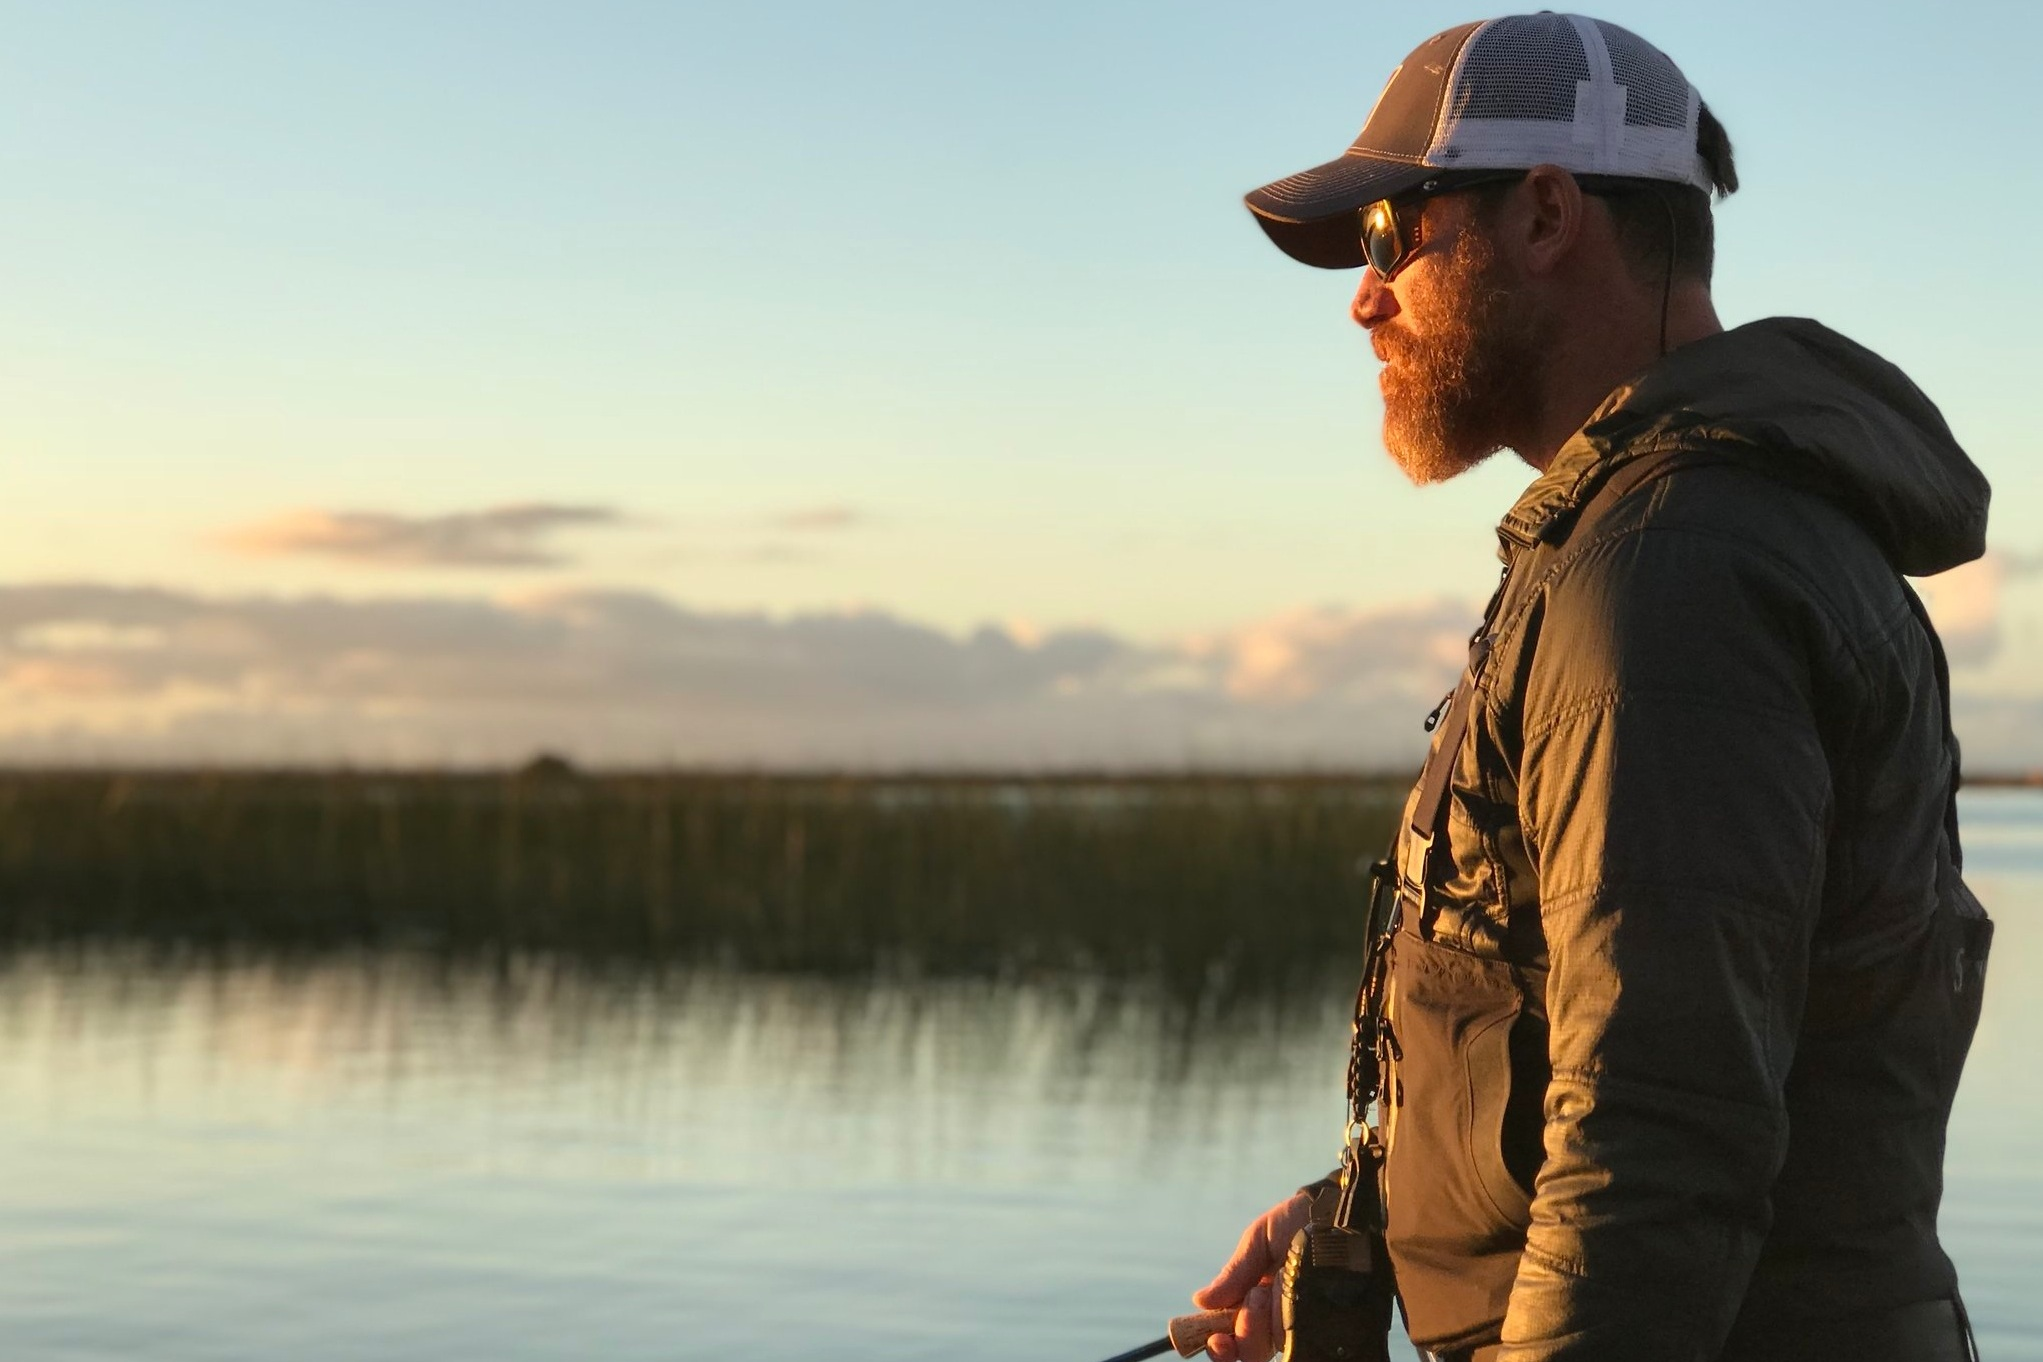 Capt. Chuck Ragan - Chuck is based out of Grass valley, CA, and is a singer and songwriter, playing solo and in the band Hot Water Music. Chuck is also a fly fishing guide, and guide for Cast Hope.